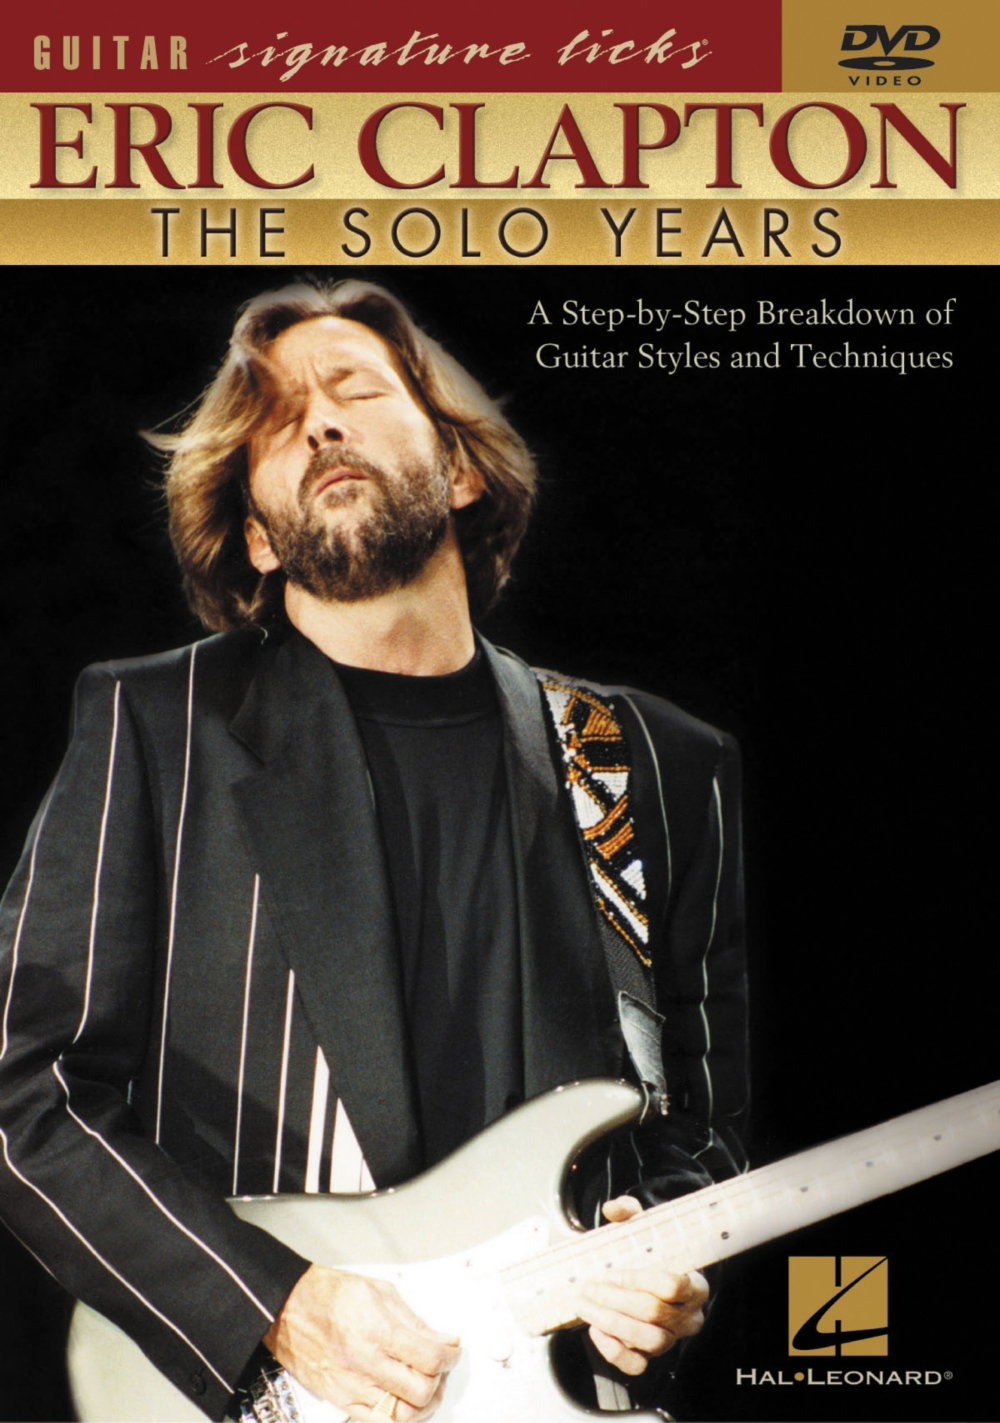 Hal Leonard Eric Clapton The Solo Years DVD by Hal Leonard Corporation